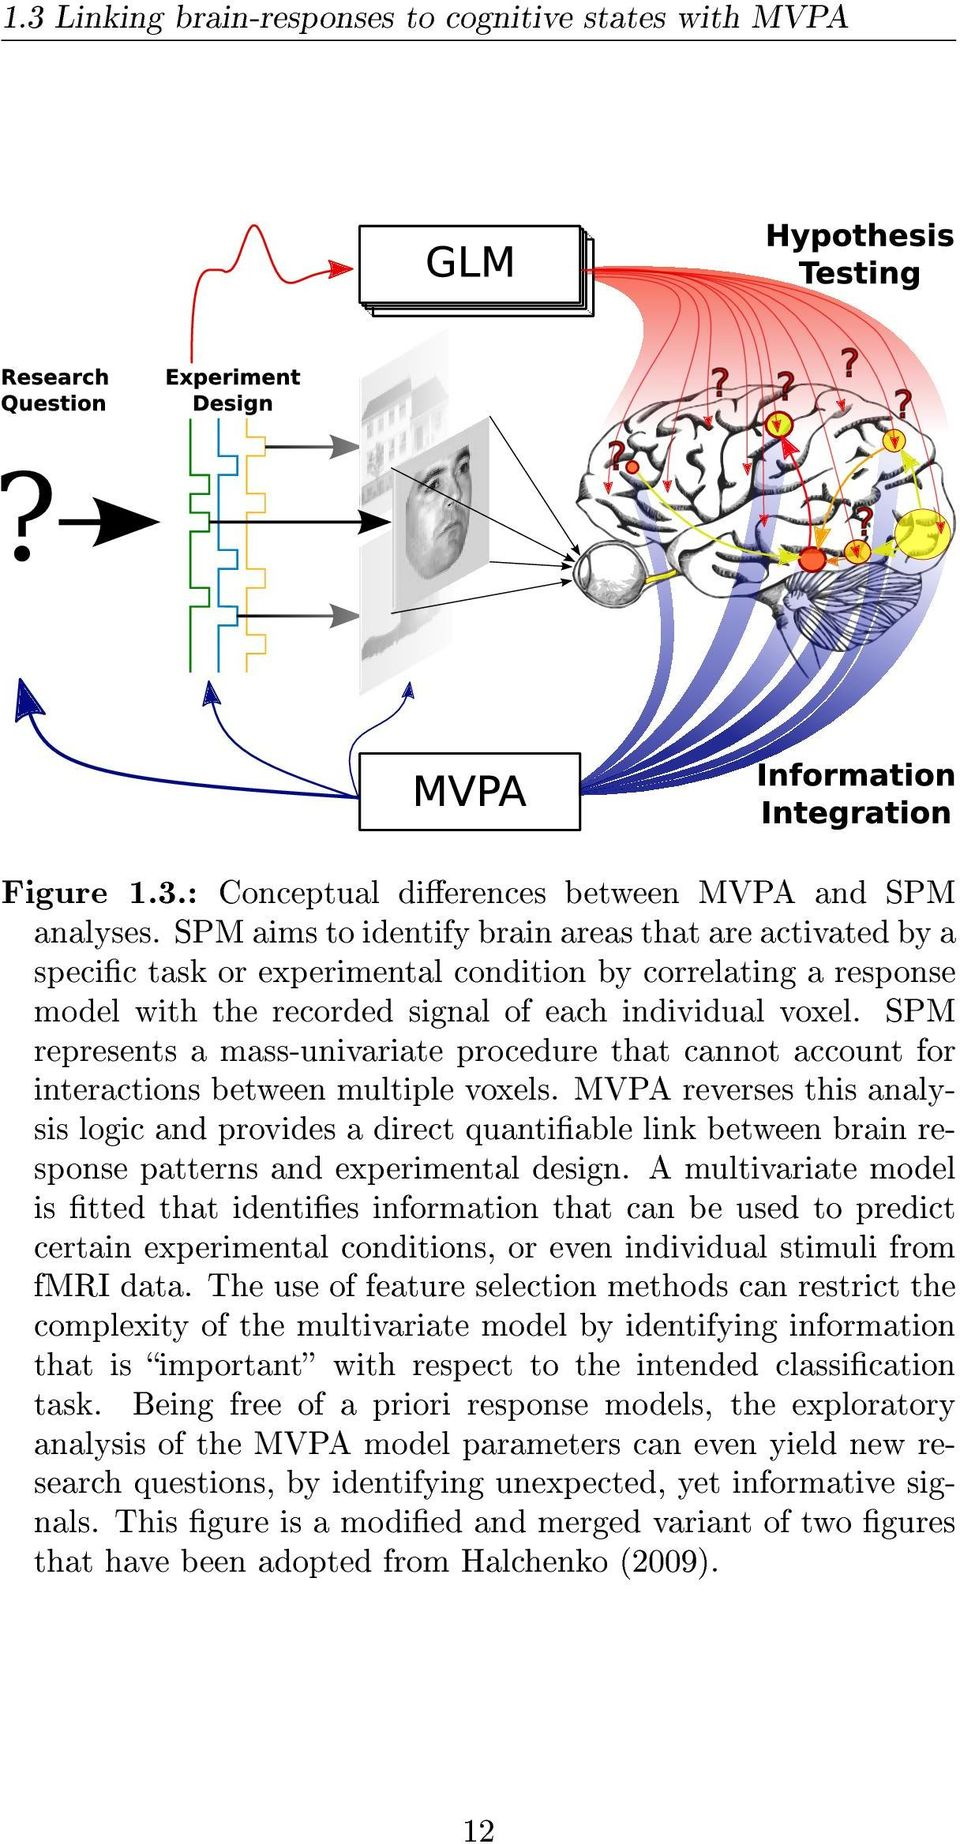 SPM represents a mass-univariate procedure that cannot account for interactions between multiple voxels.